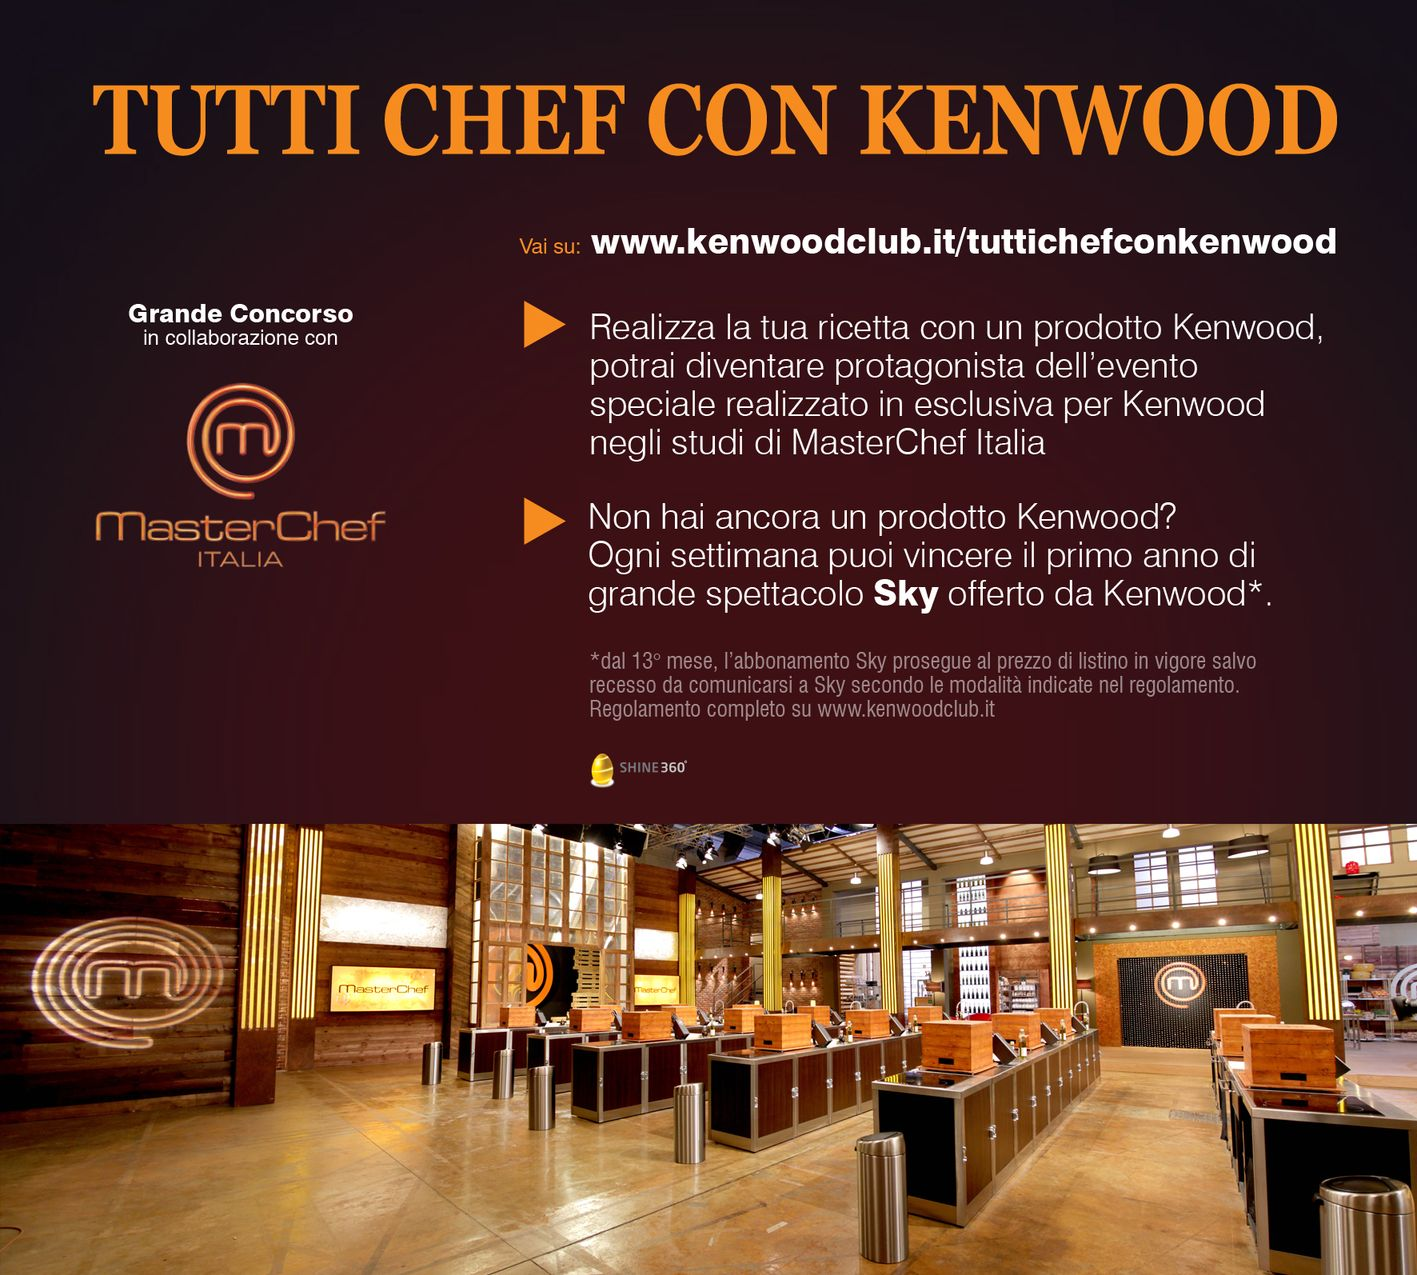 Cucina piccolipiaceri press news - Chef titanium con voz ...